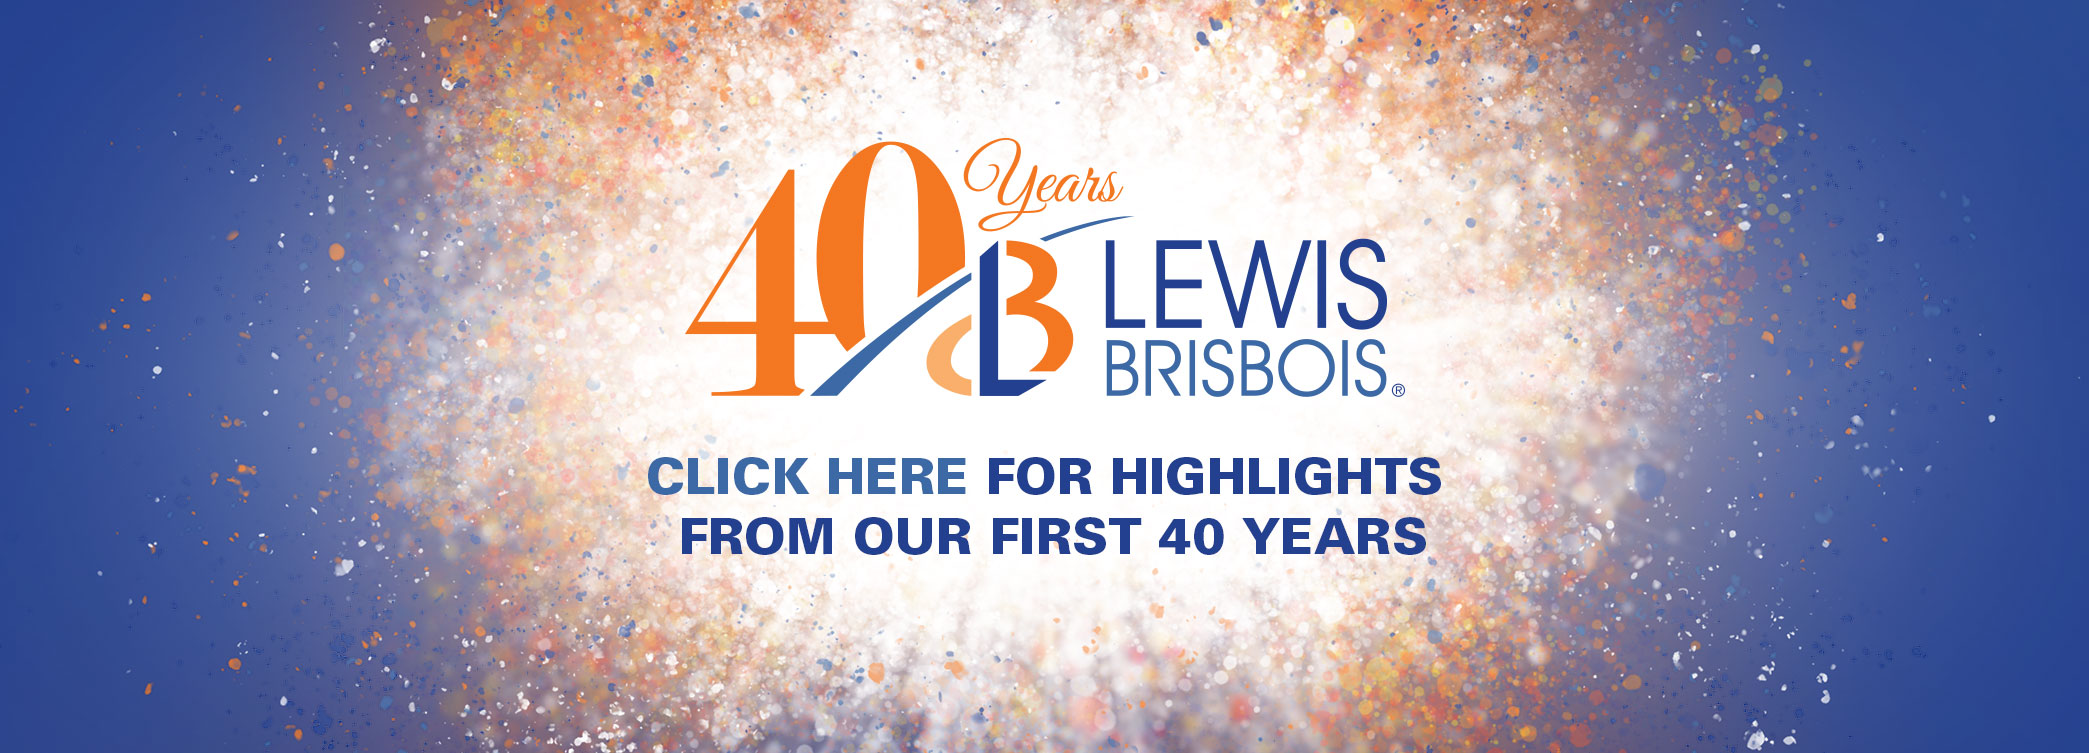 history-of-lewis-brisbois